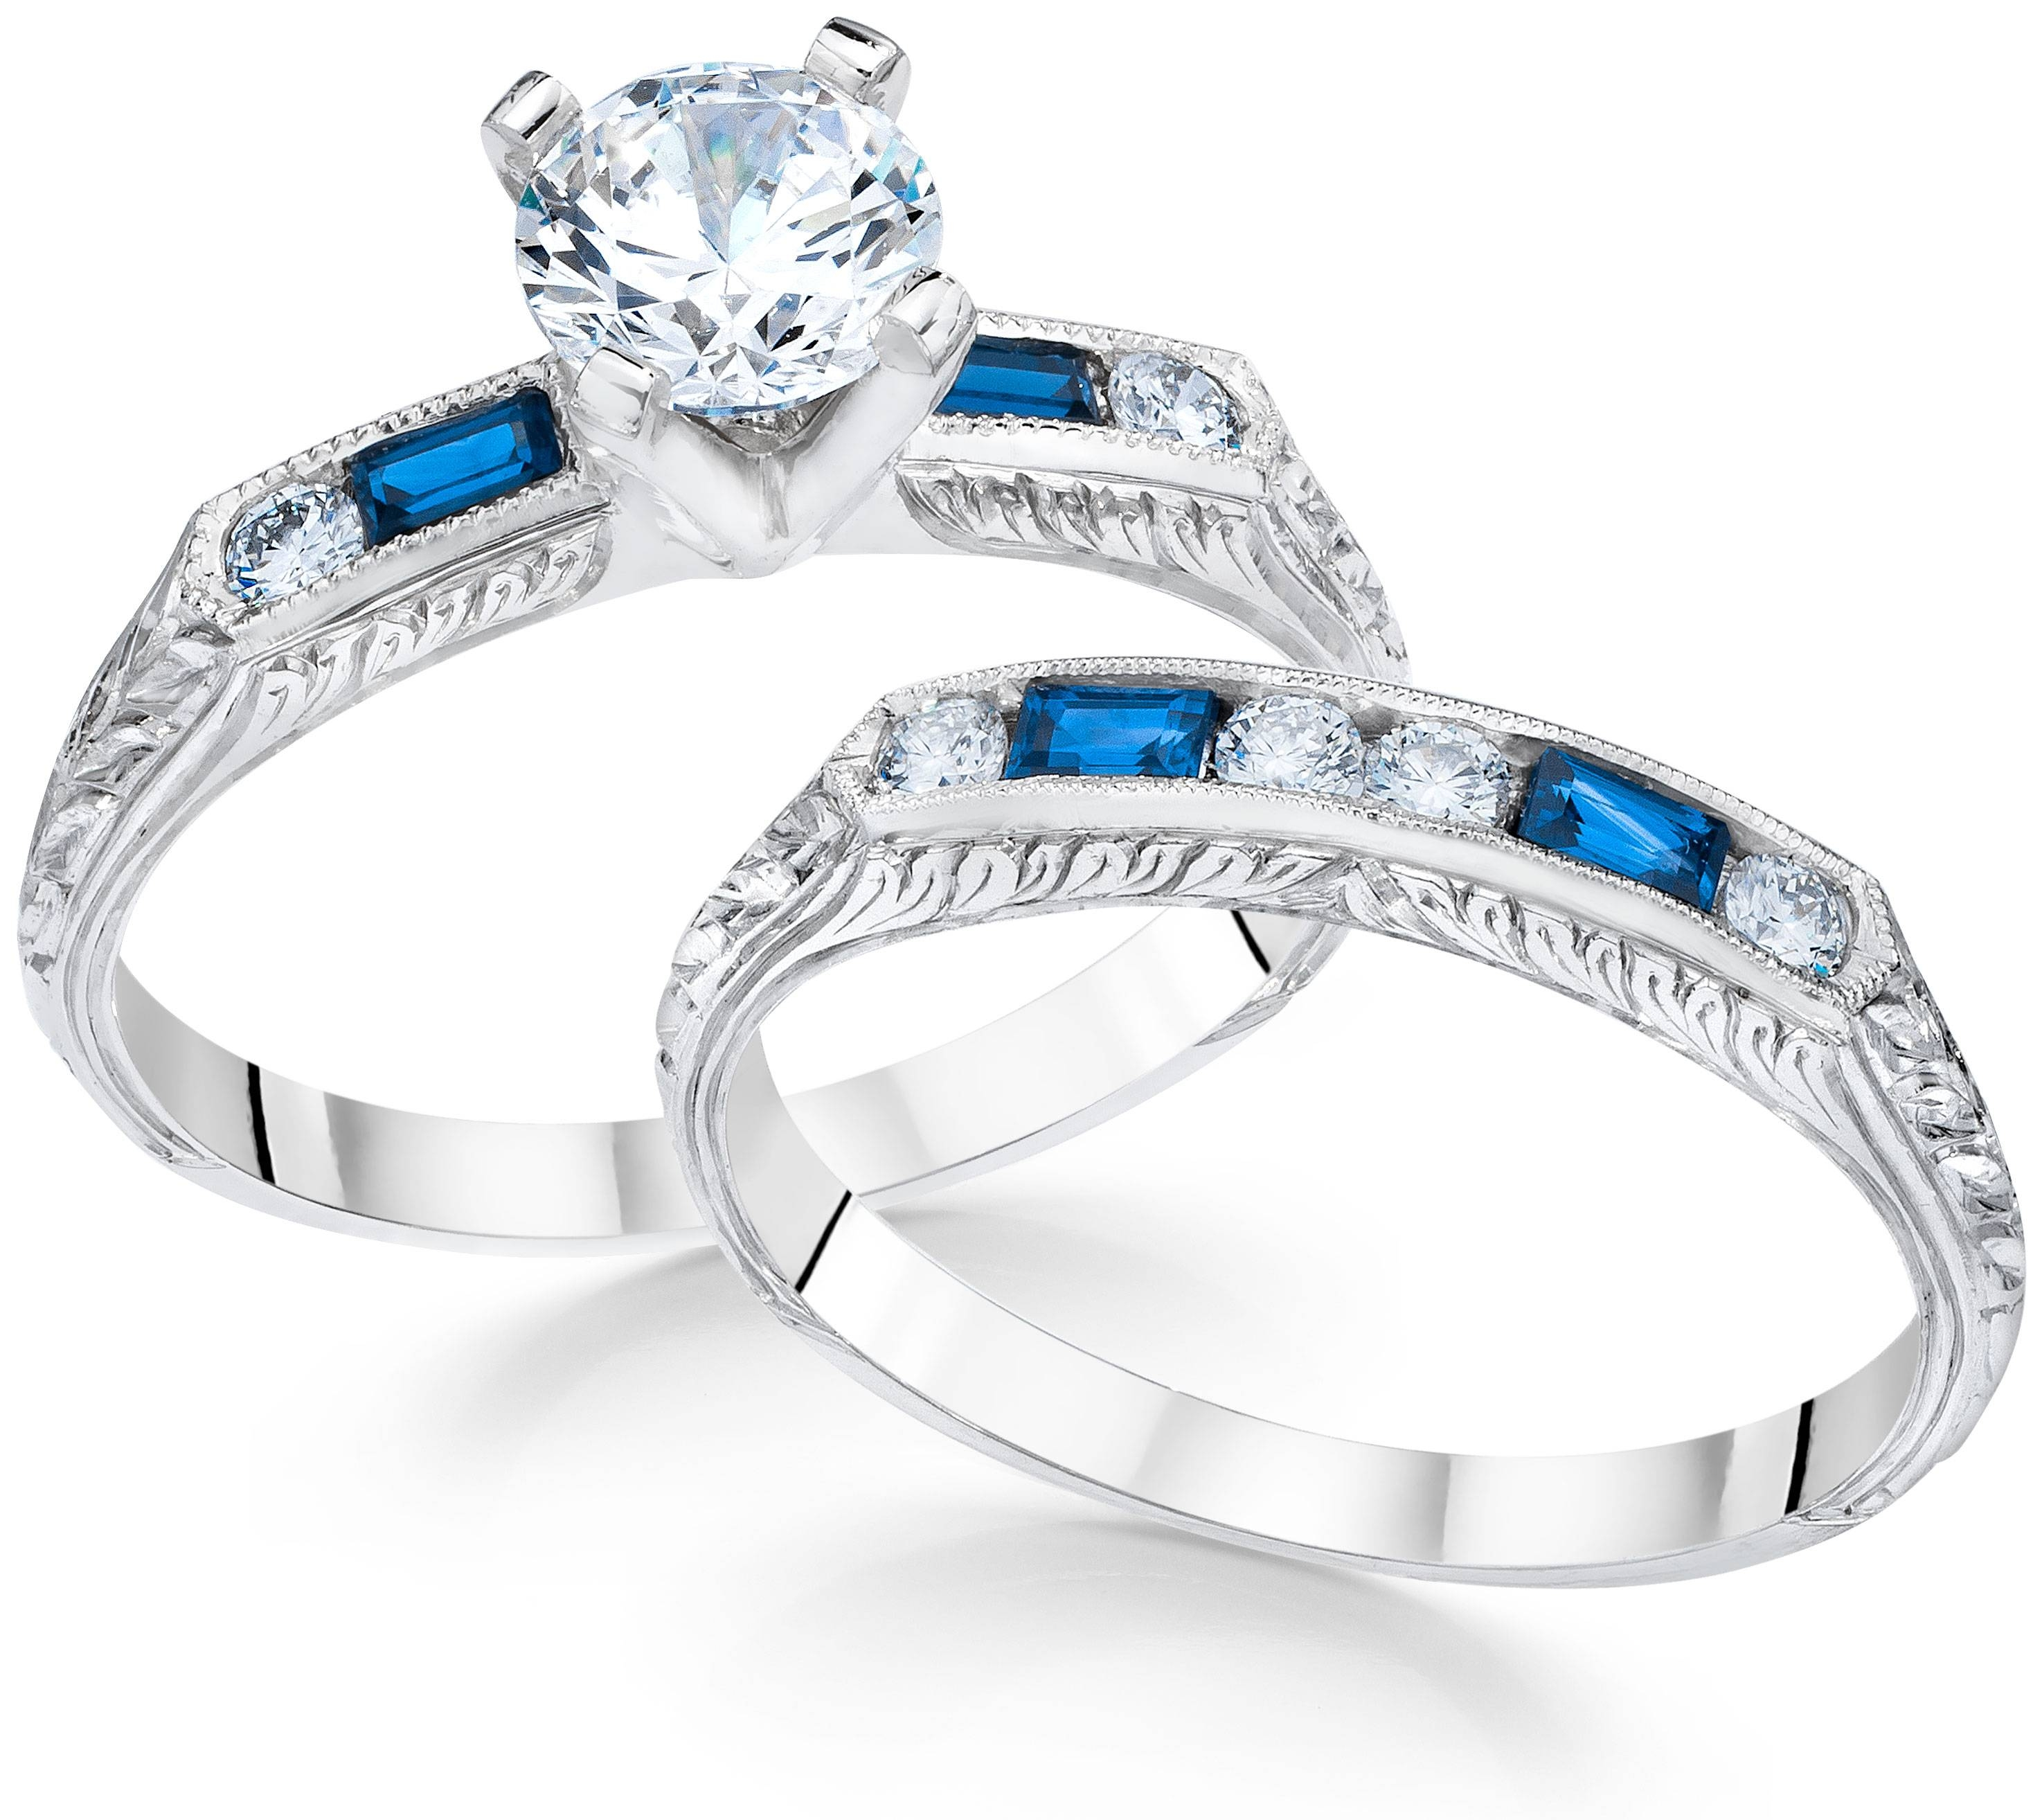 The Perfect Pair: 9 Ideal Engagement Ring & Wedding Band For Engagement Rings Pair (View 14 of 15)